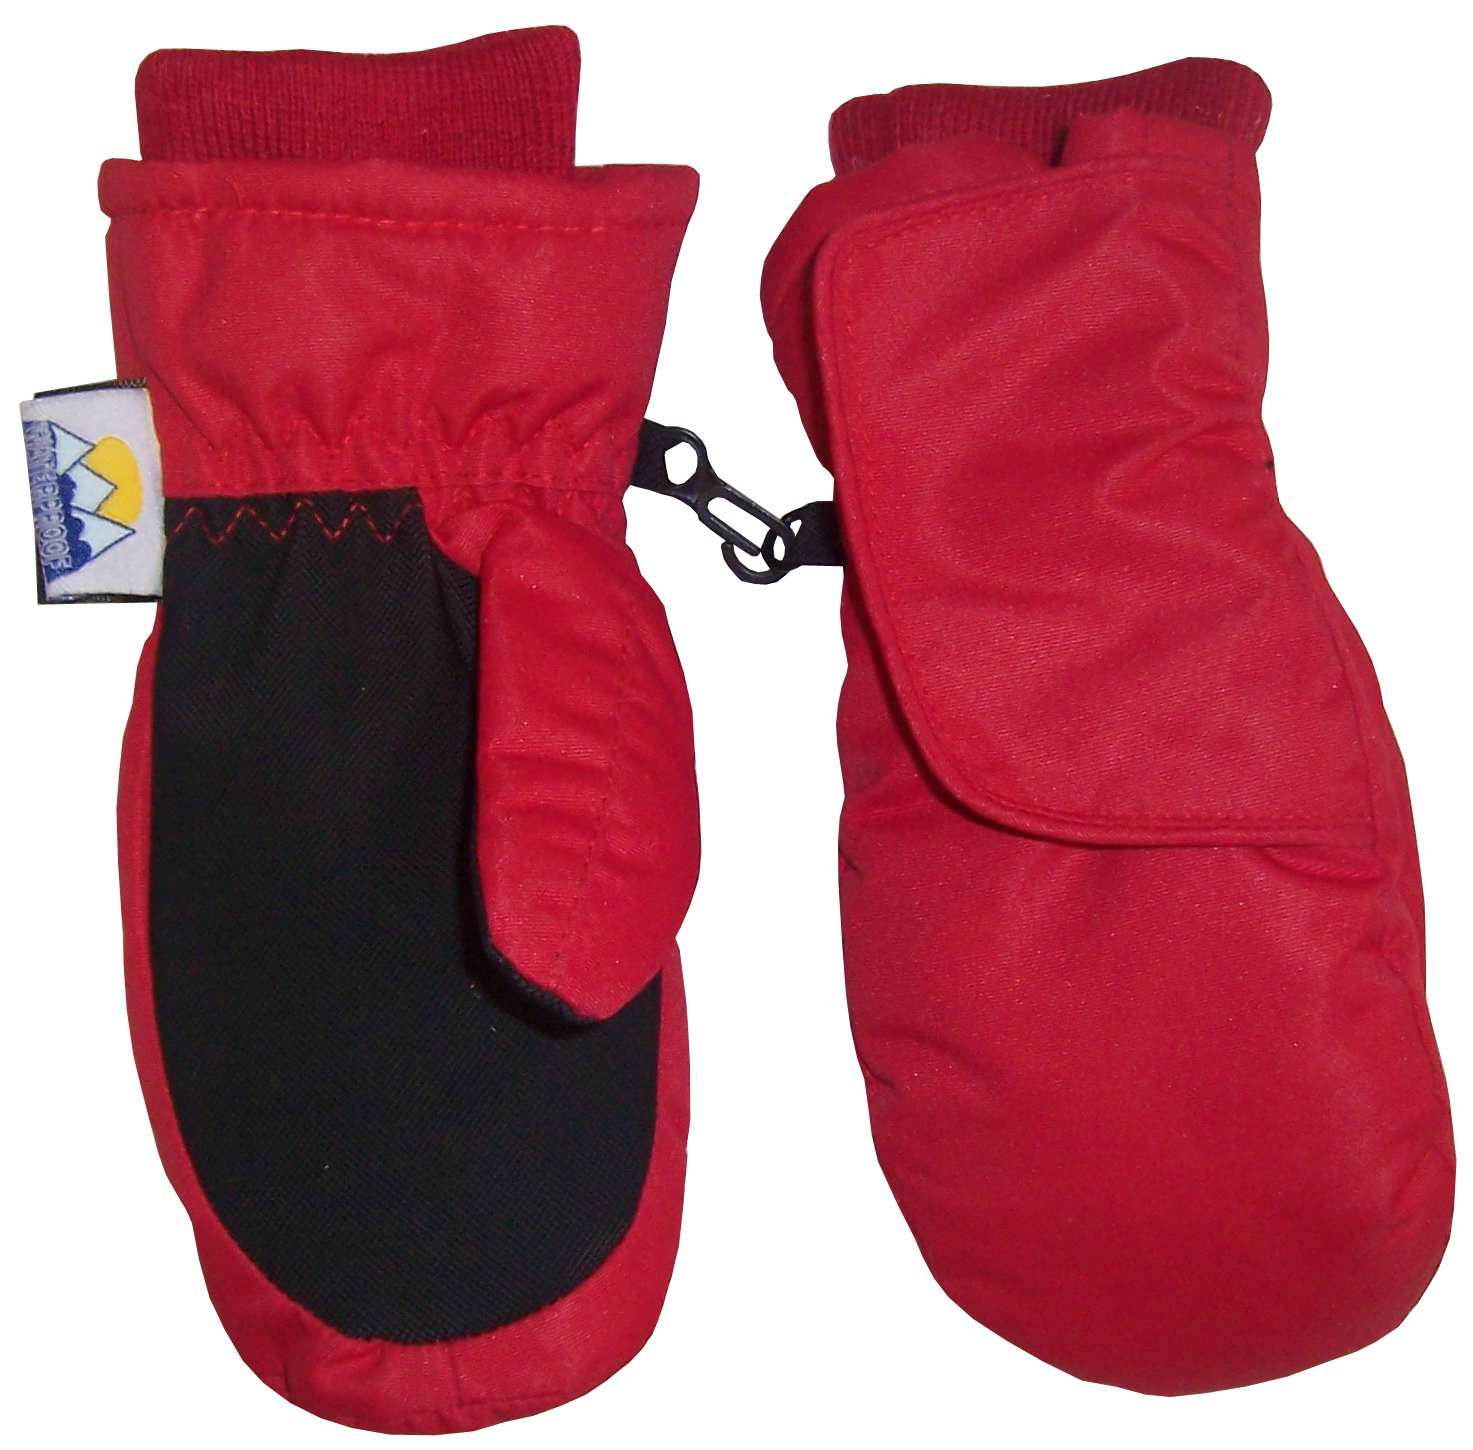 N'Ice Caps Kids Easy-On Wrap Waterproof Thinsulate Winter Snow Mitten (4-5 Years, Red) by N'Ice Caps